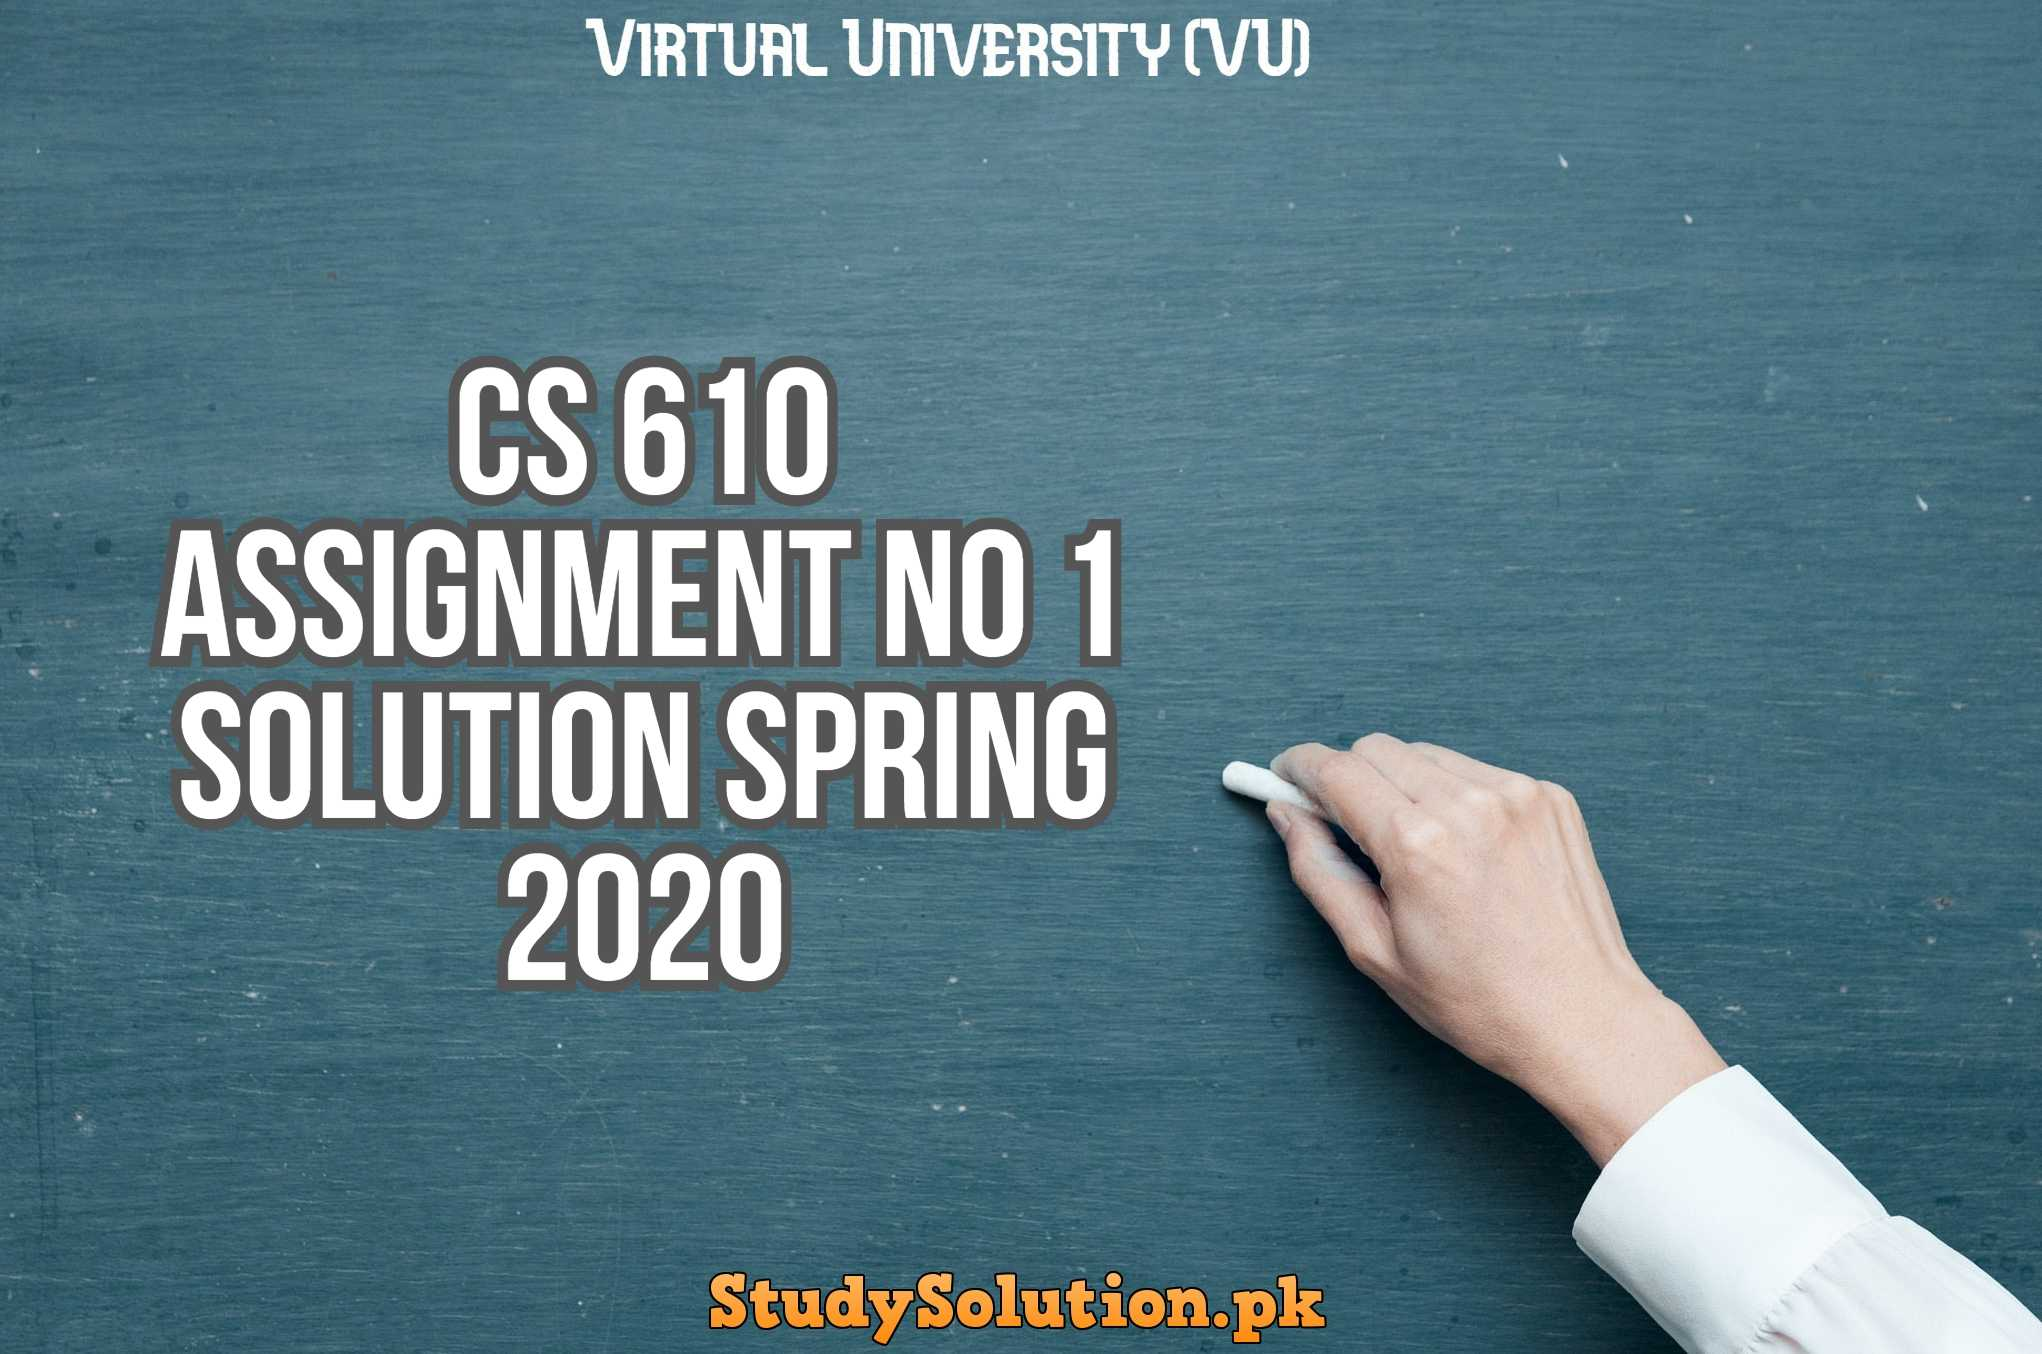 CS 610 Assignment No 1 Solution Spring 2020